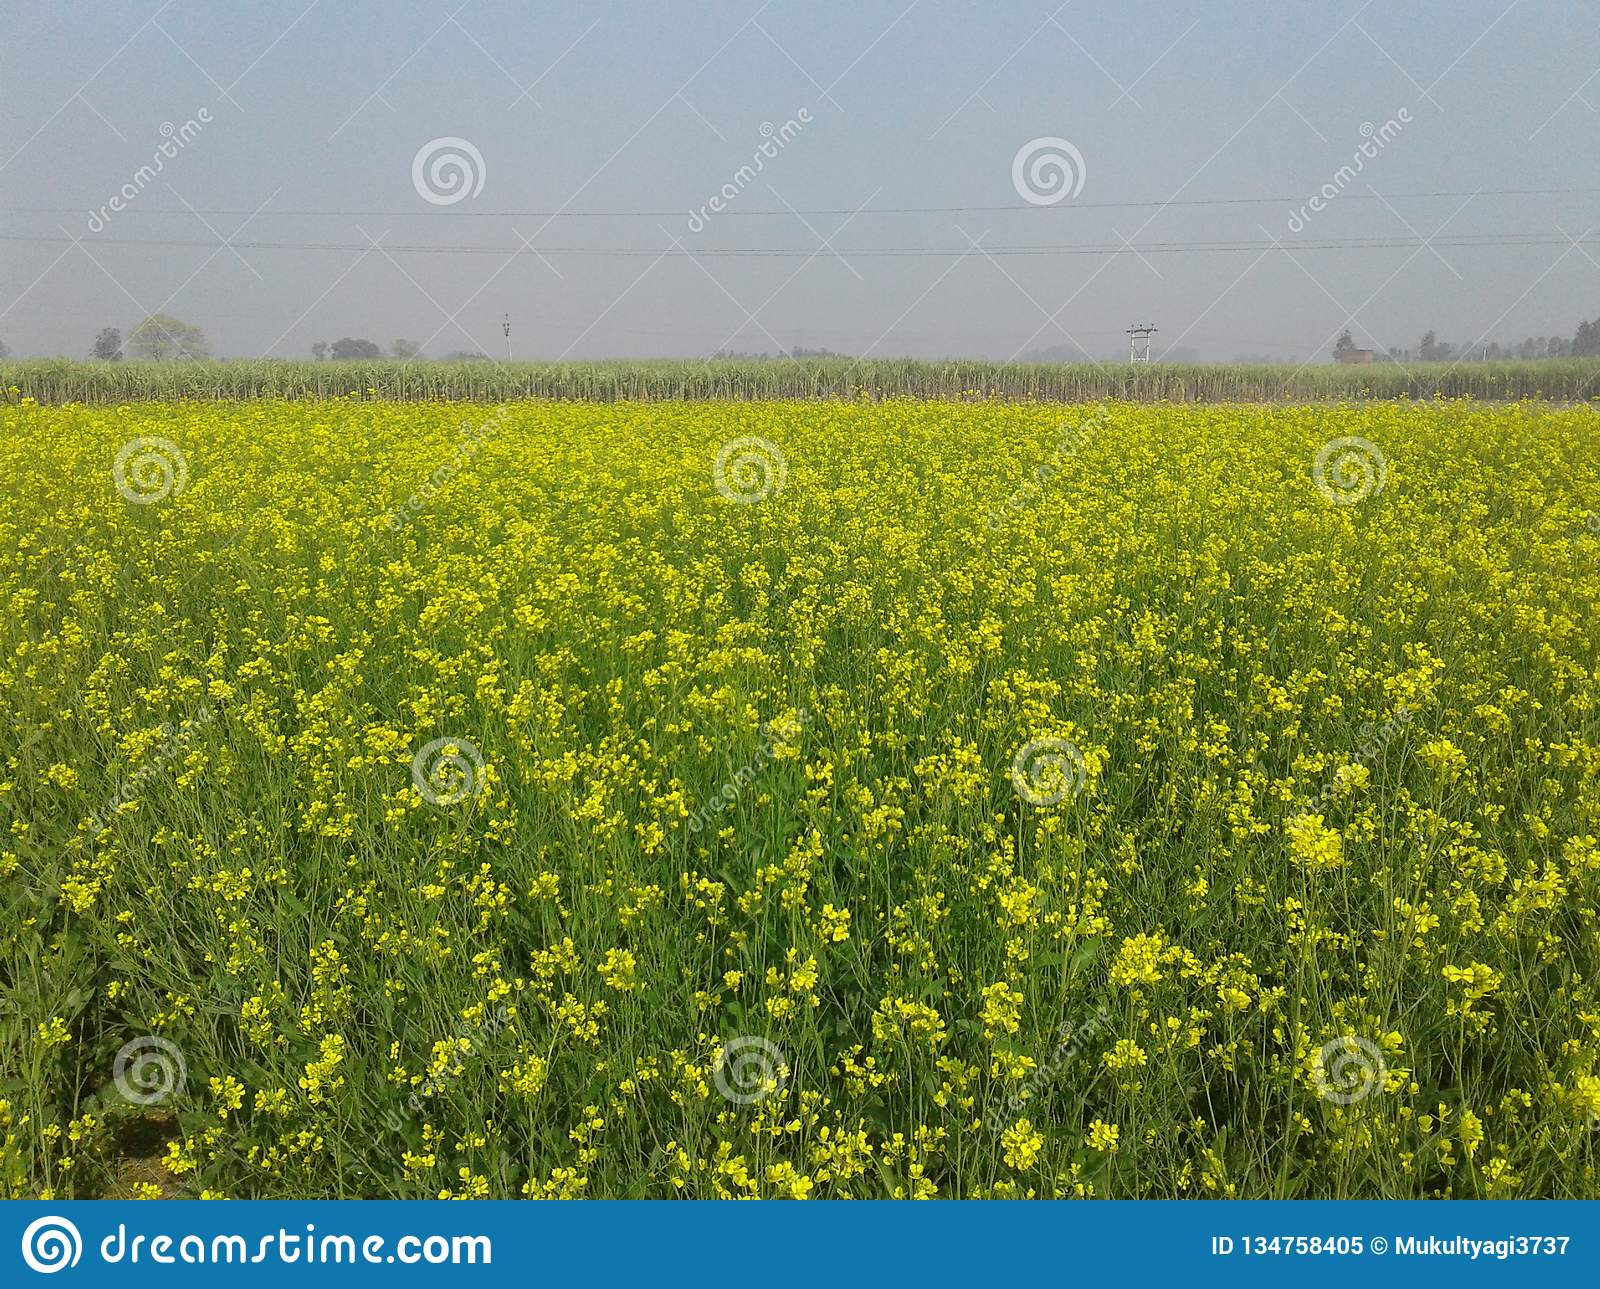 Beautiful Mustard Field With Yellow Flowers And Green Leaves Stock